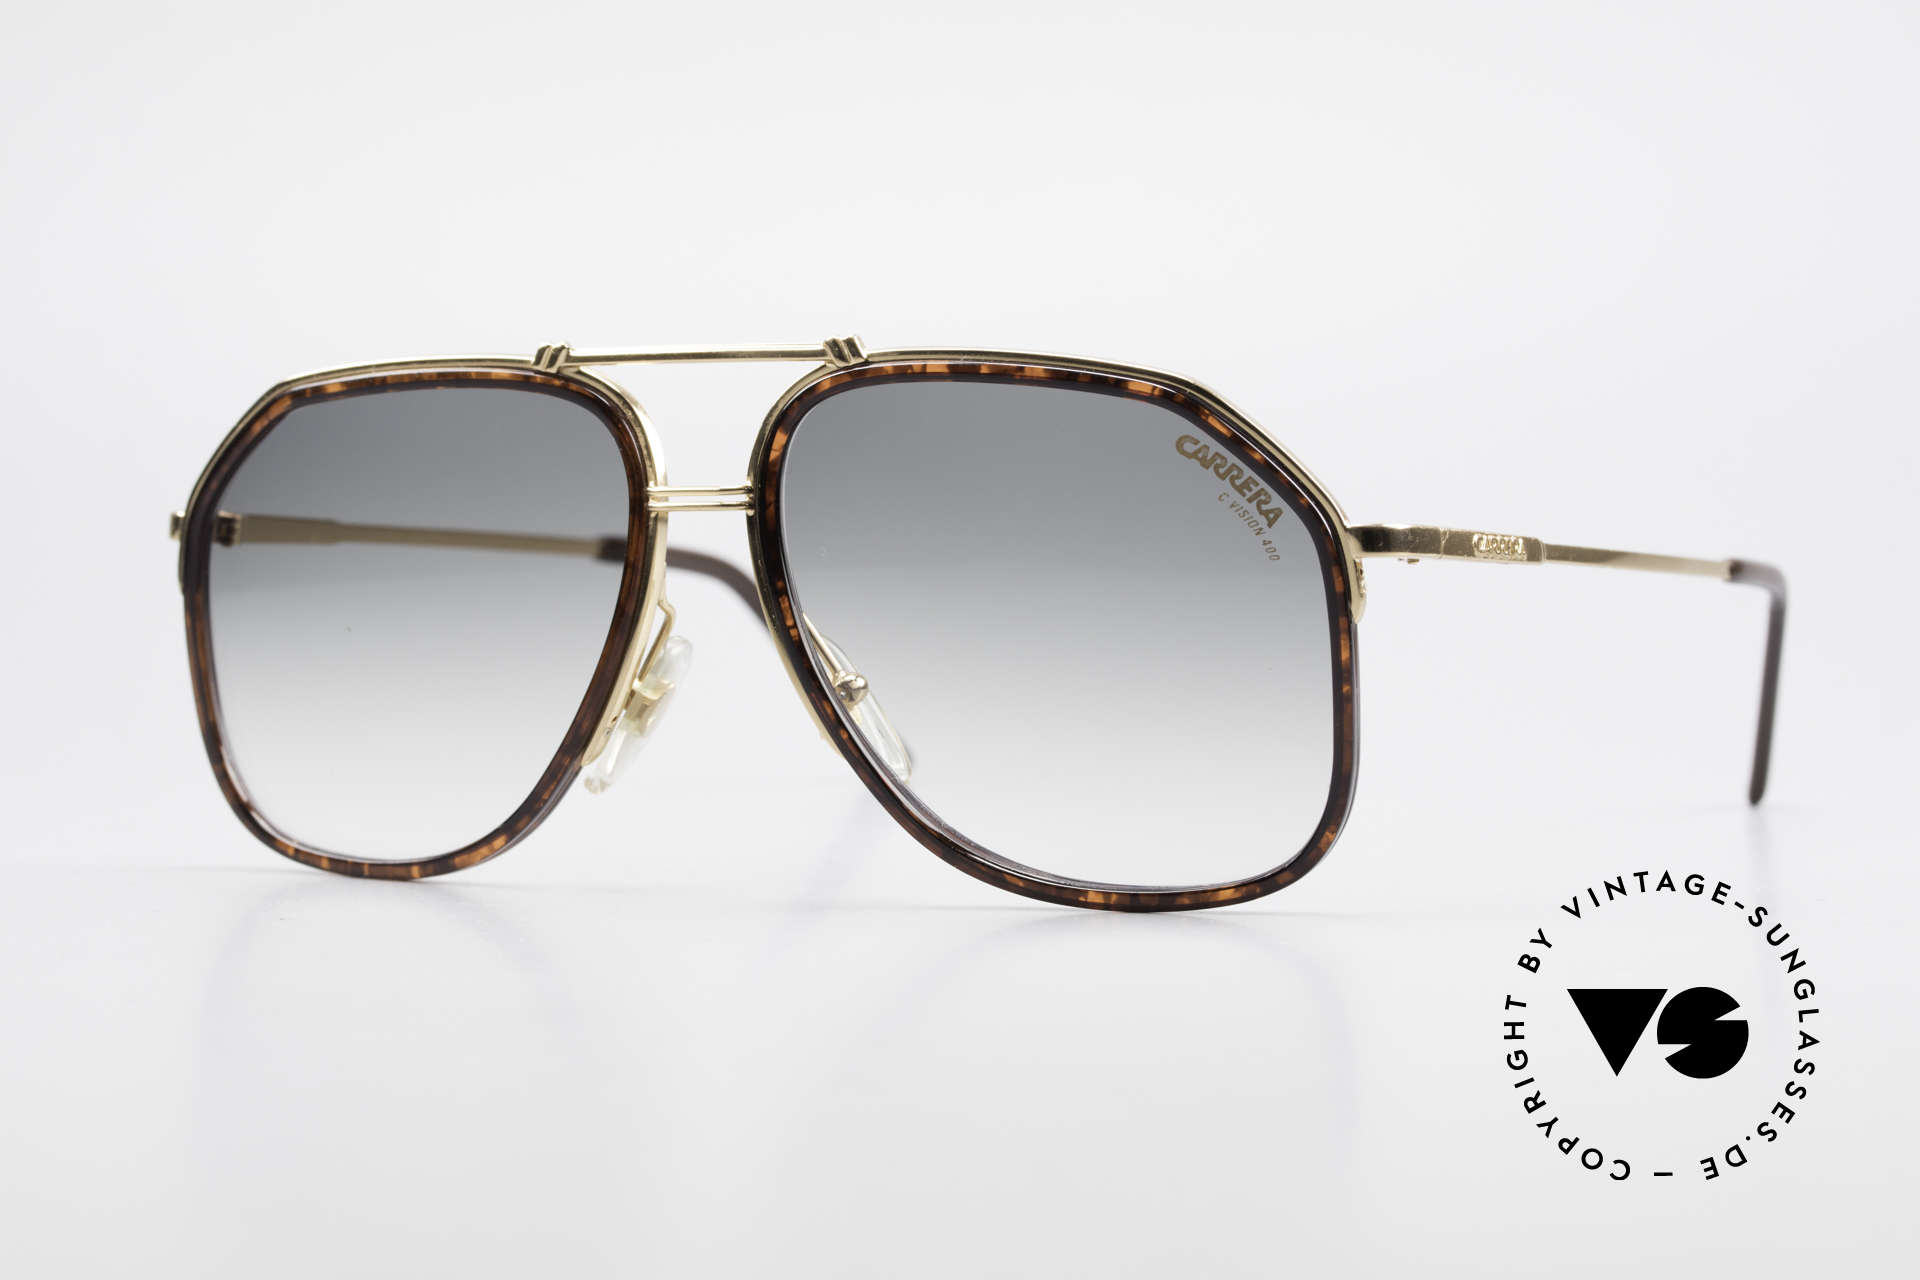 Carrera 5370 Classic Vintage Sunglasses, noble vintage 1990's designer glasses by Carrera, Made for Men